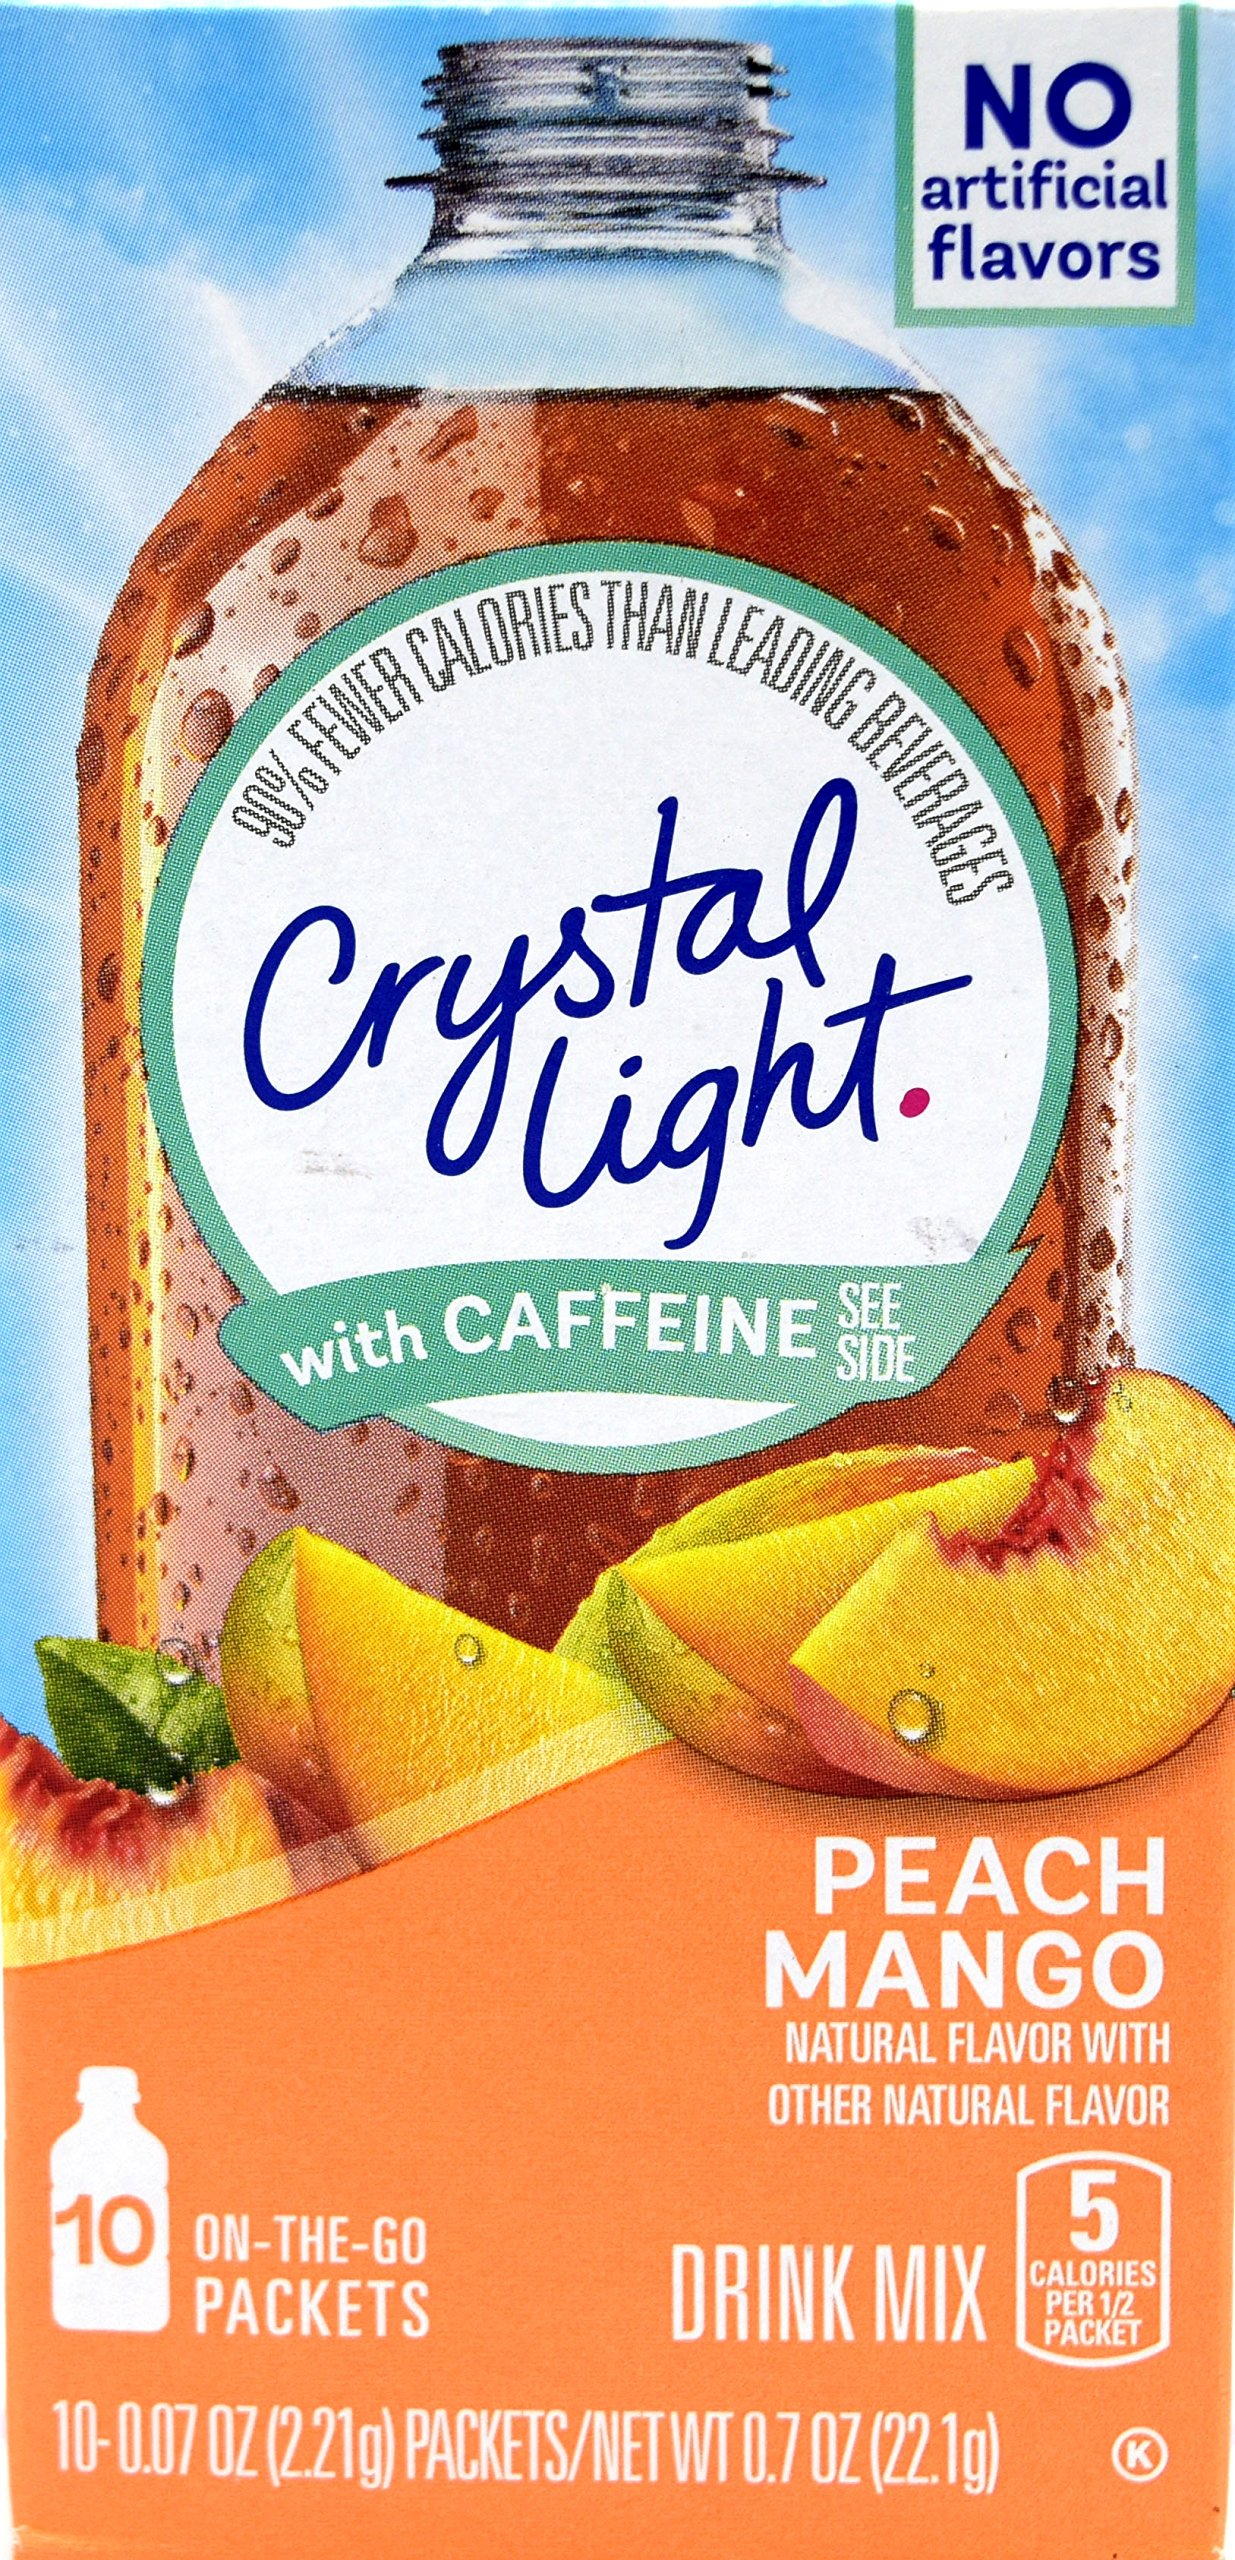 Crystal Light On The Go Peach Mango With Caffeine Drink Mix, 10-Packet Box (Pack of 45) by Crystal Light